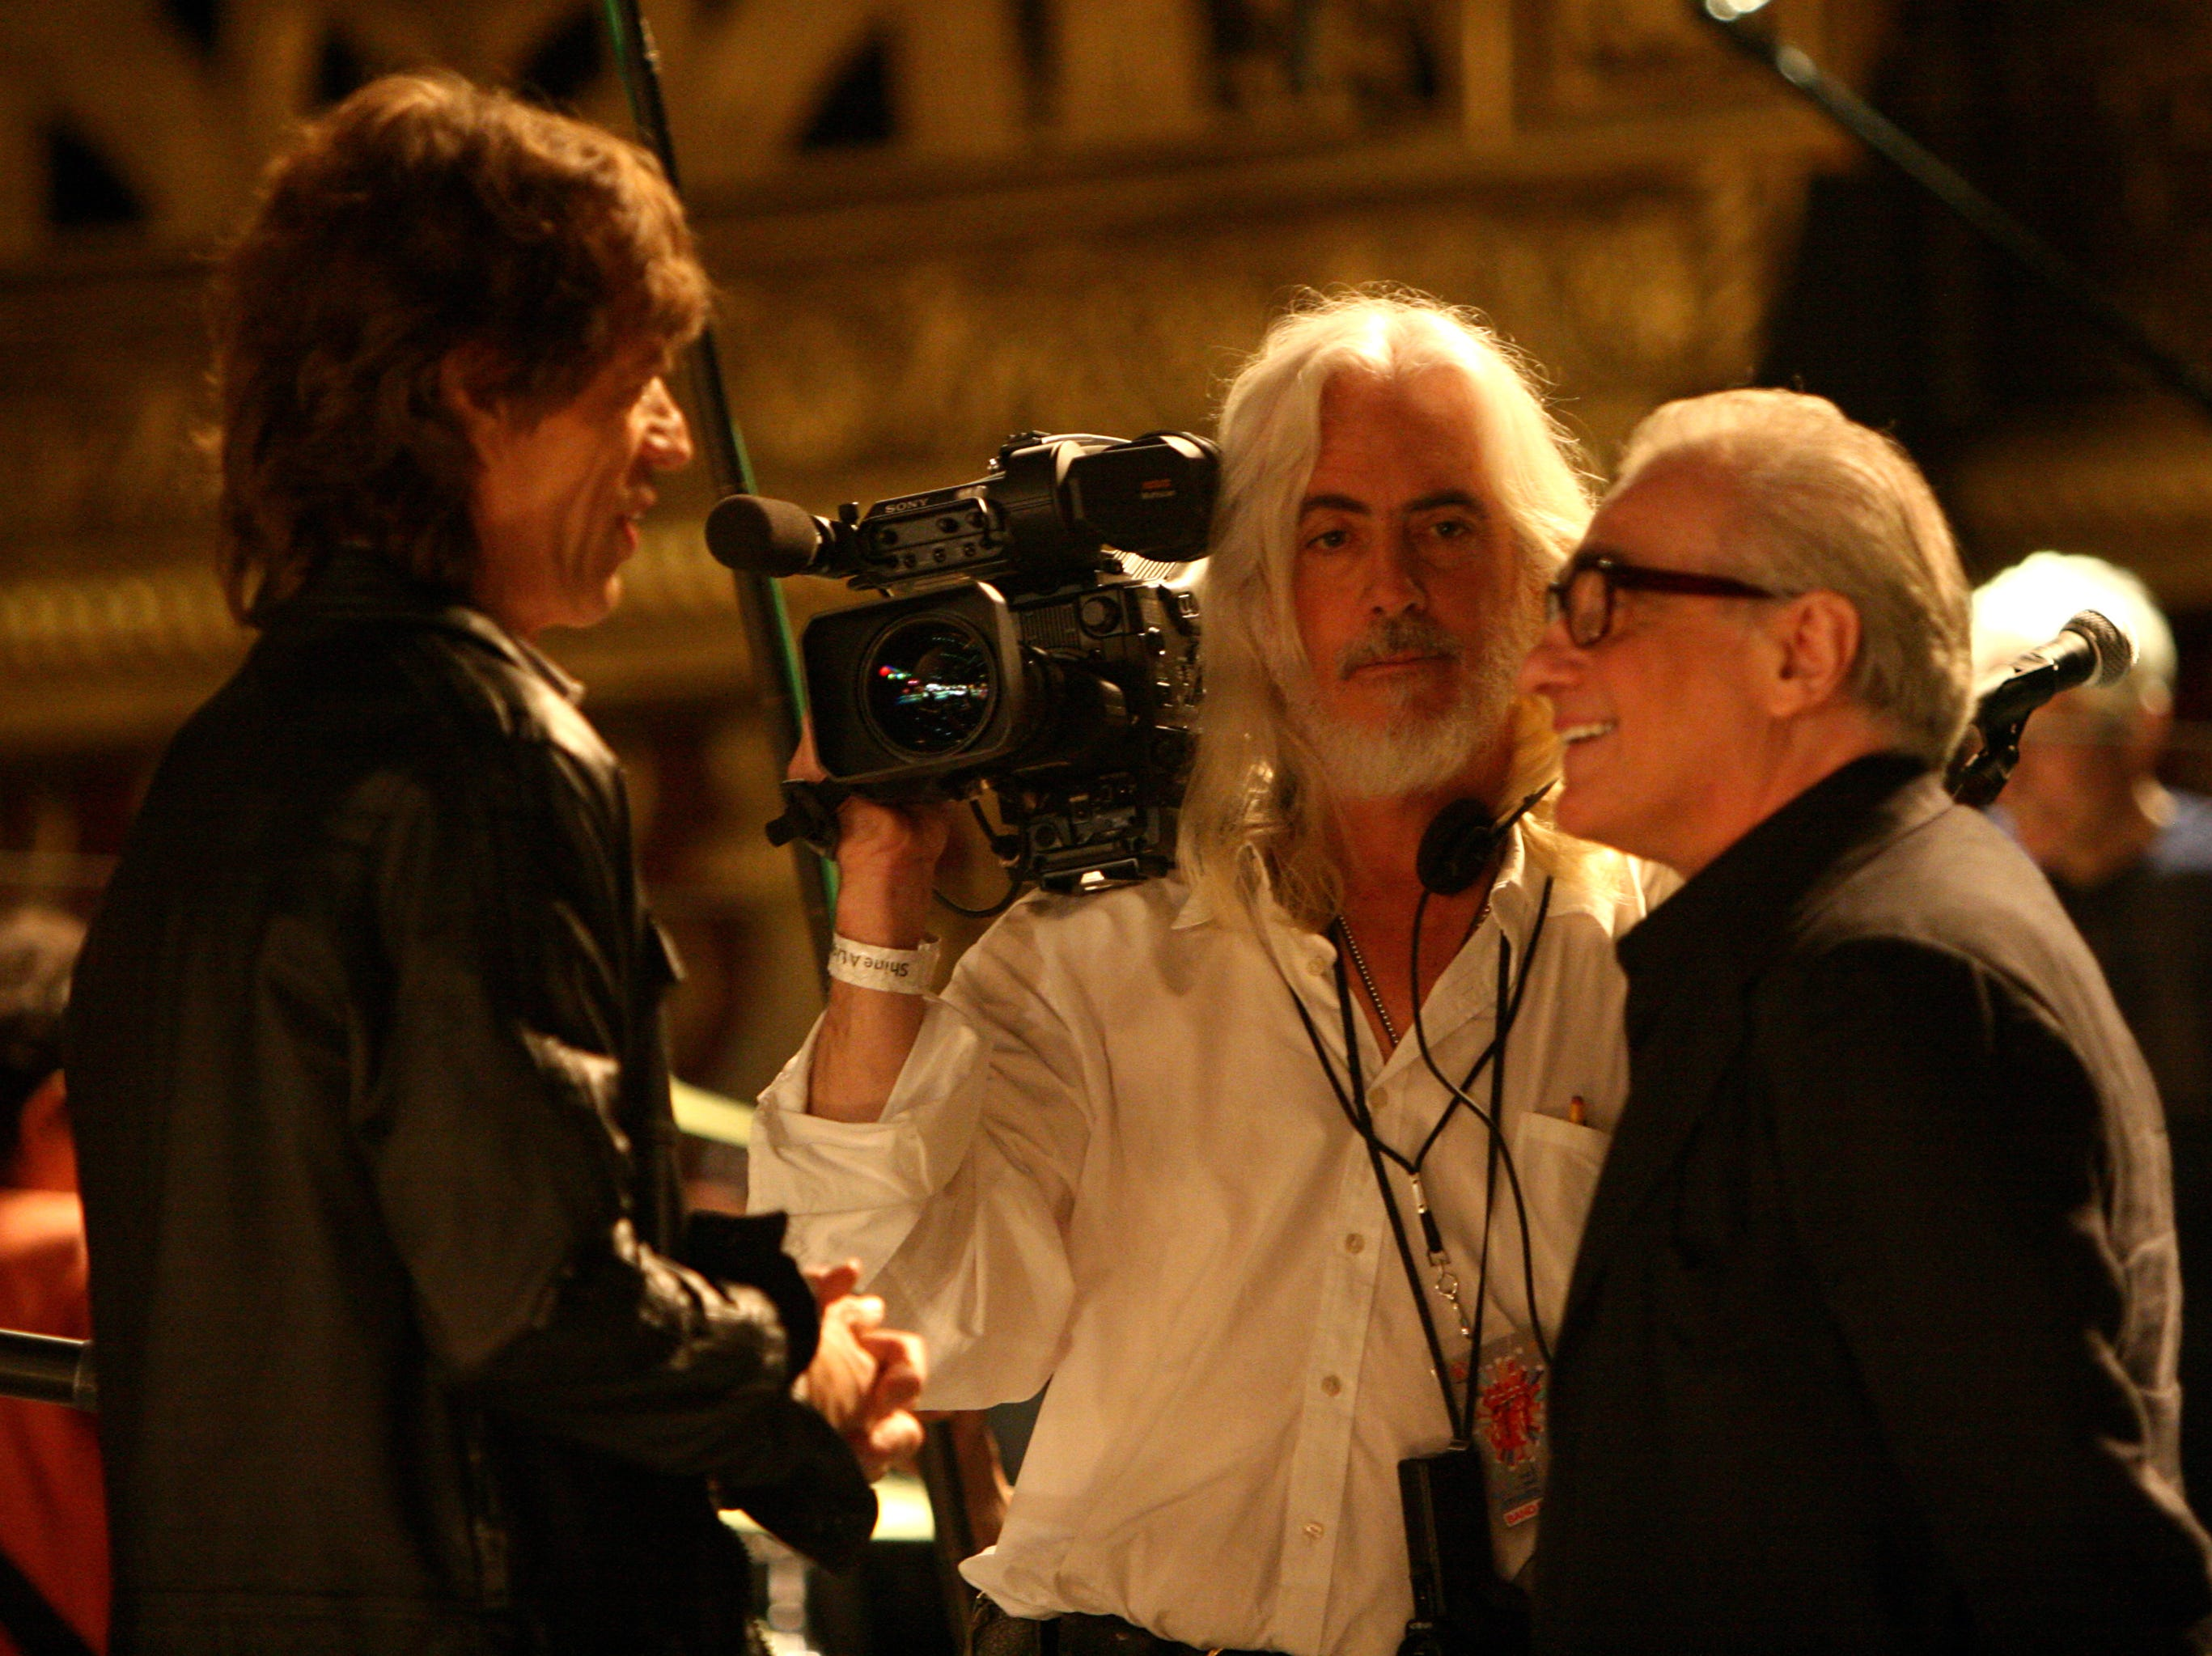 "Left to right: Mick Jagger, director of photography Robert Richardson, and director Martin Scorsese backstage at the Beacon Theater while filming the Rolling Stones concert film ""Shine A Light."" Photo by Jacob Cohl, Paramount Classics (Via MerlinFTP Drop)"